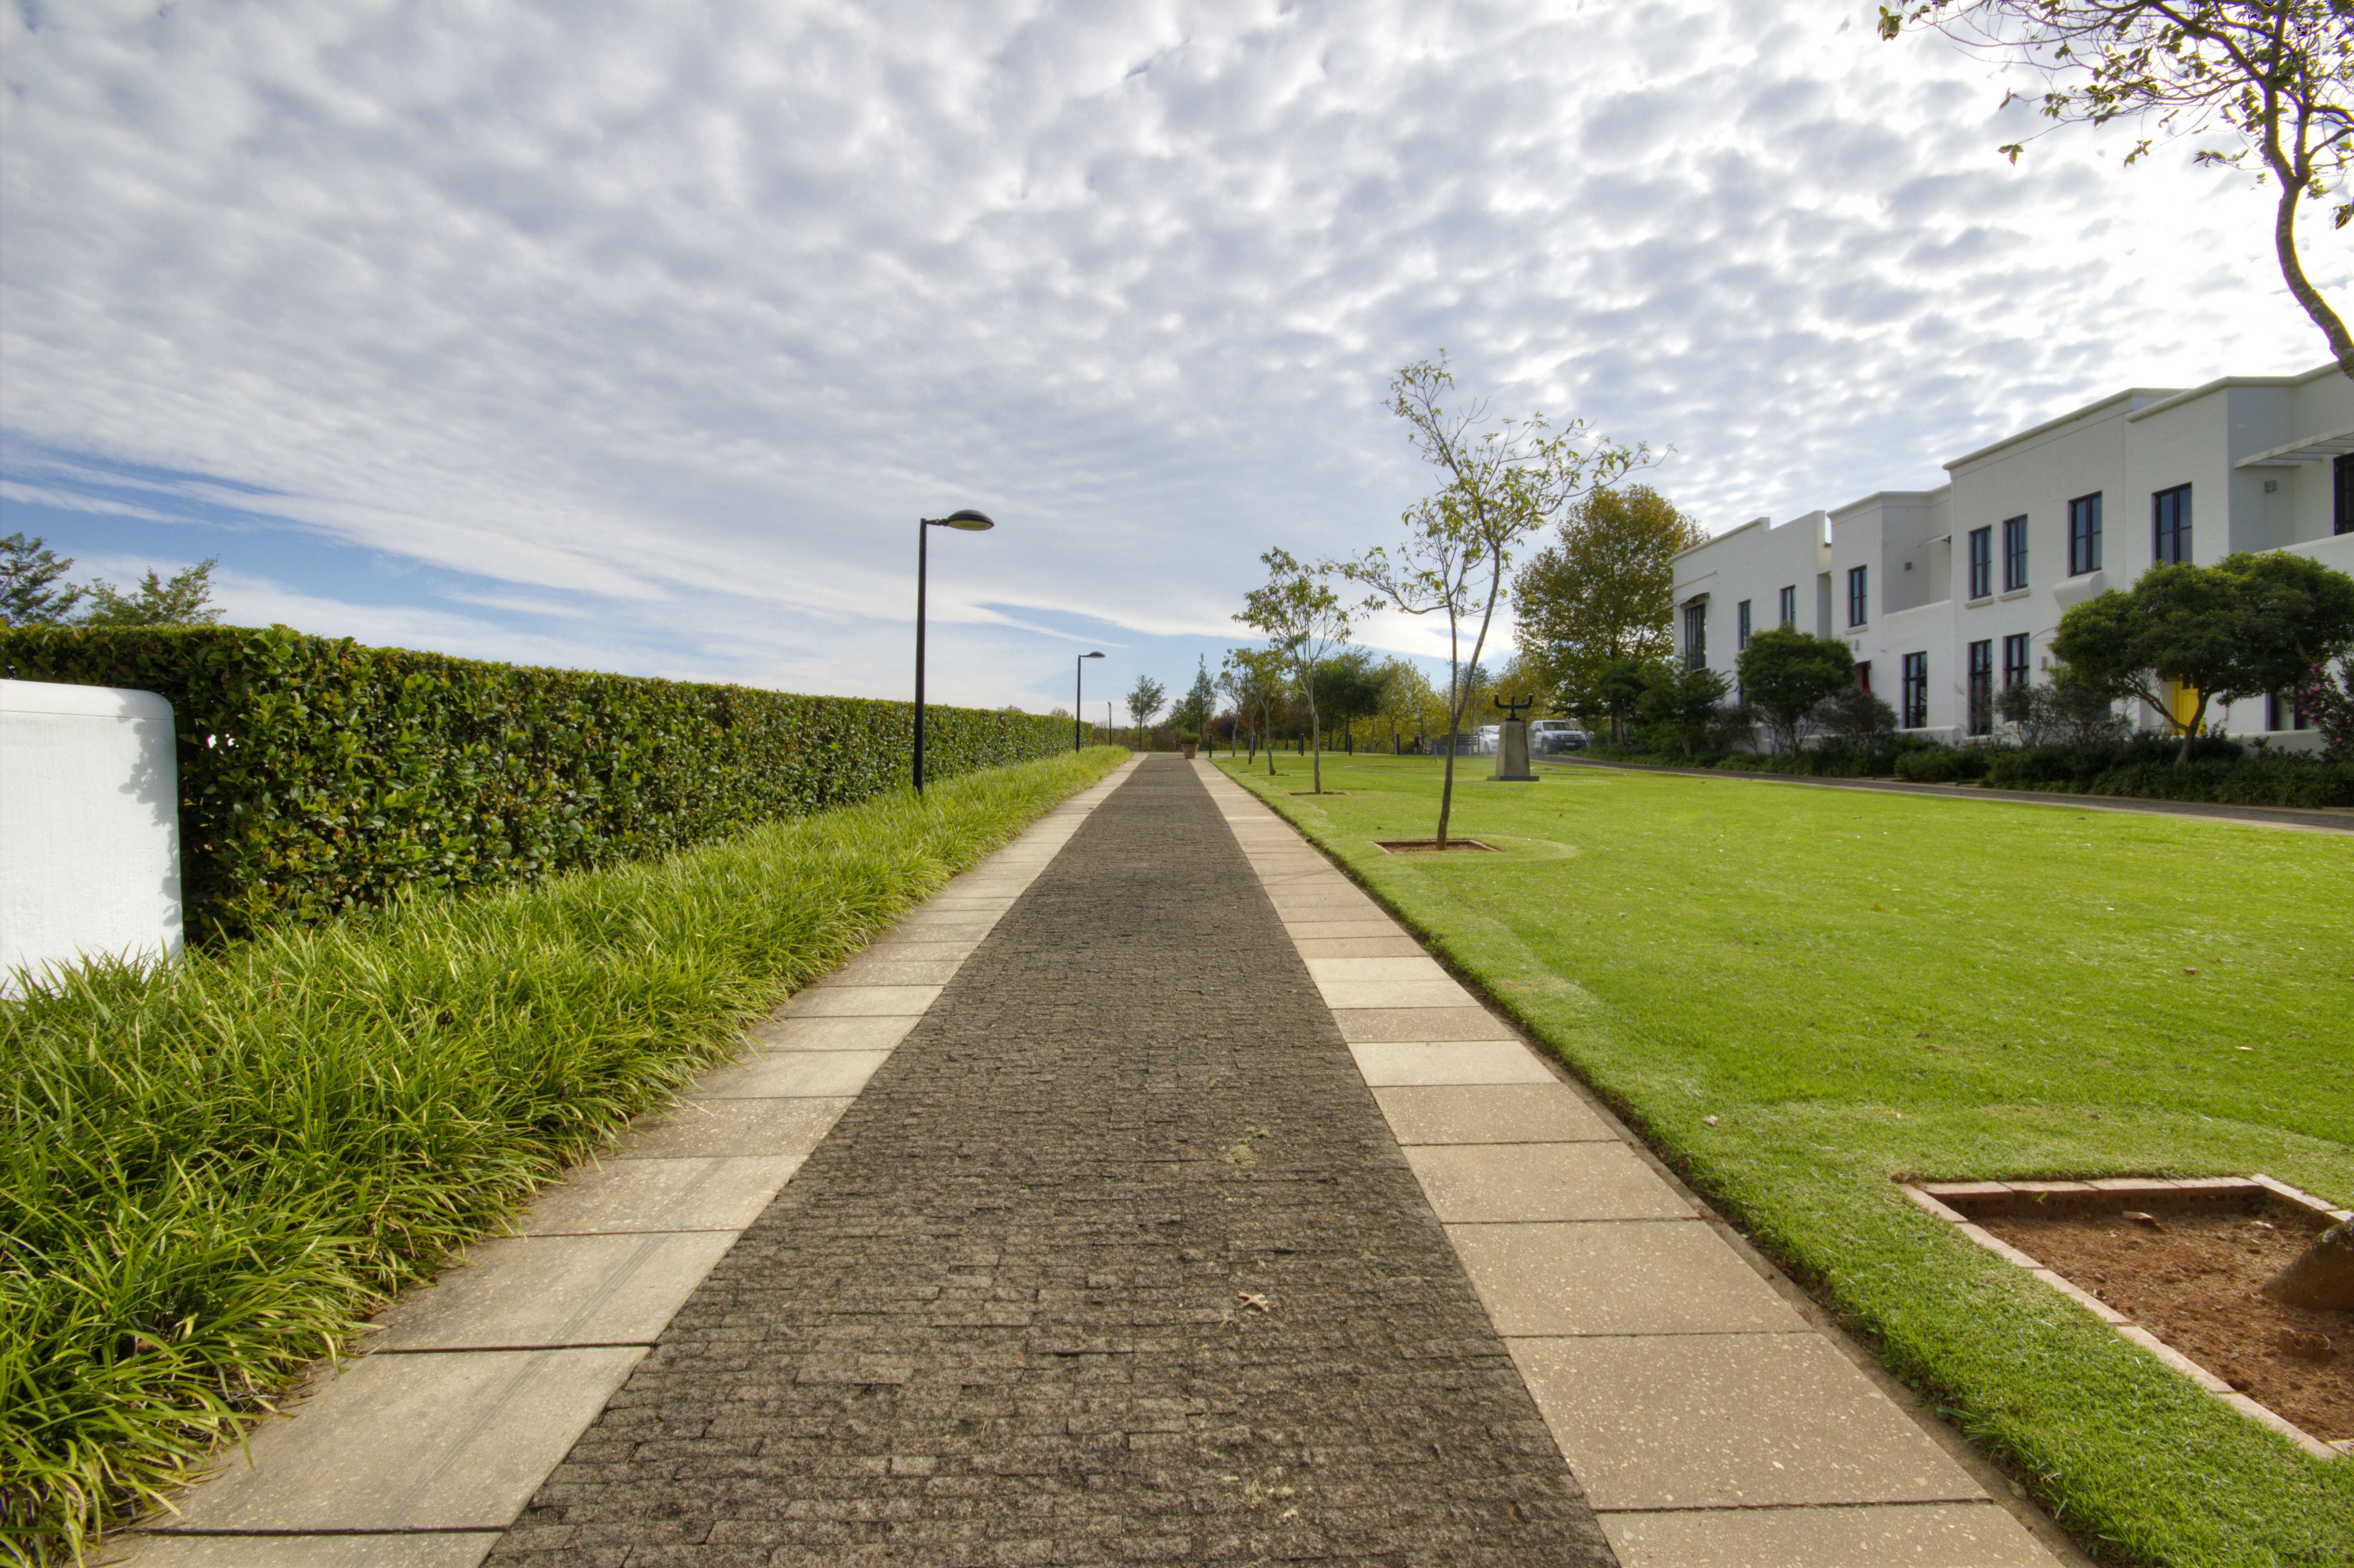 The Promenade - for beautiful views of the surrounding farmland